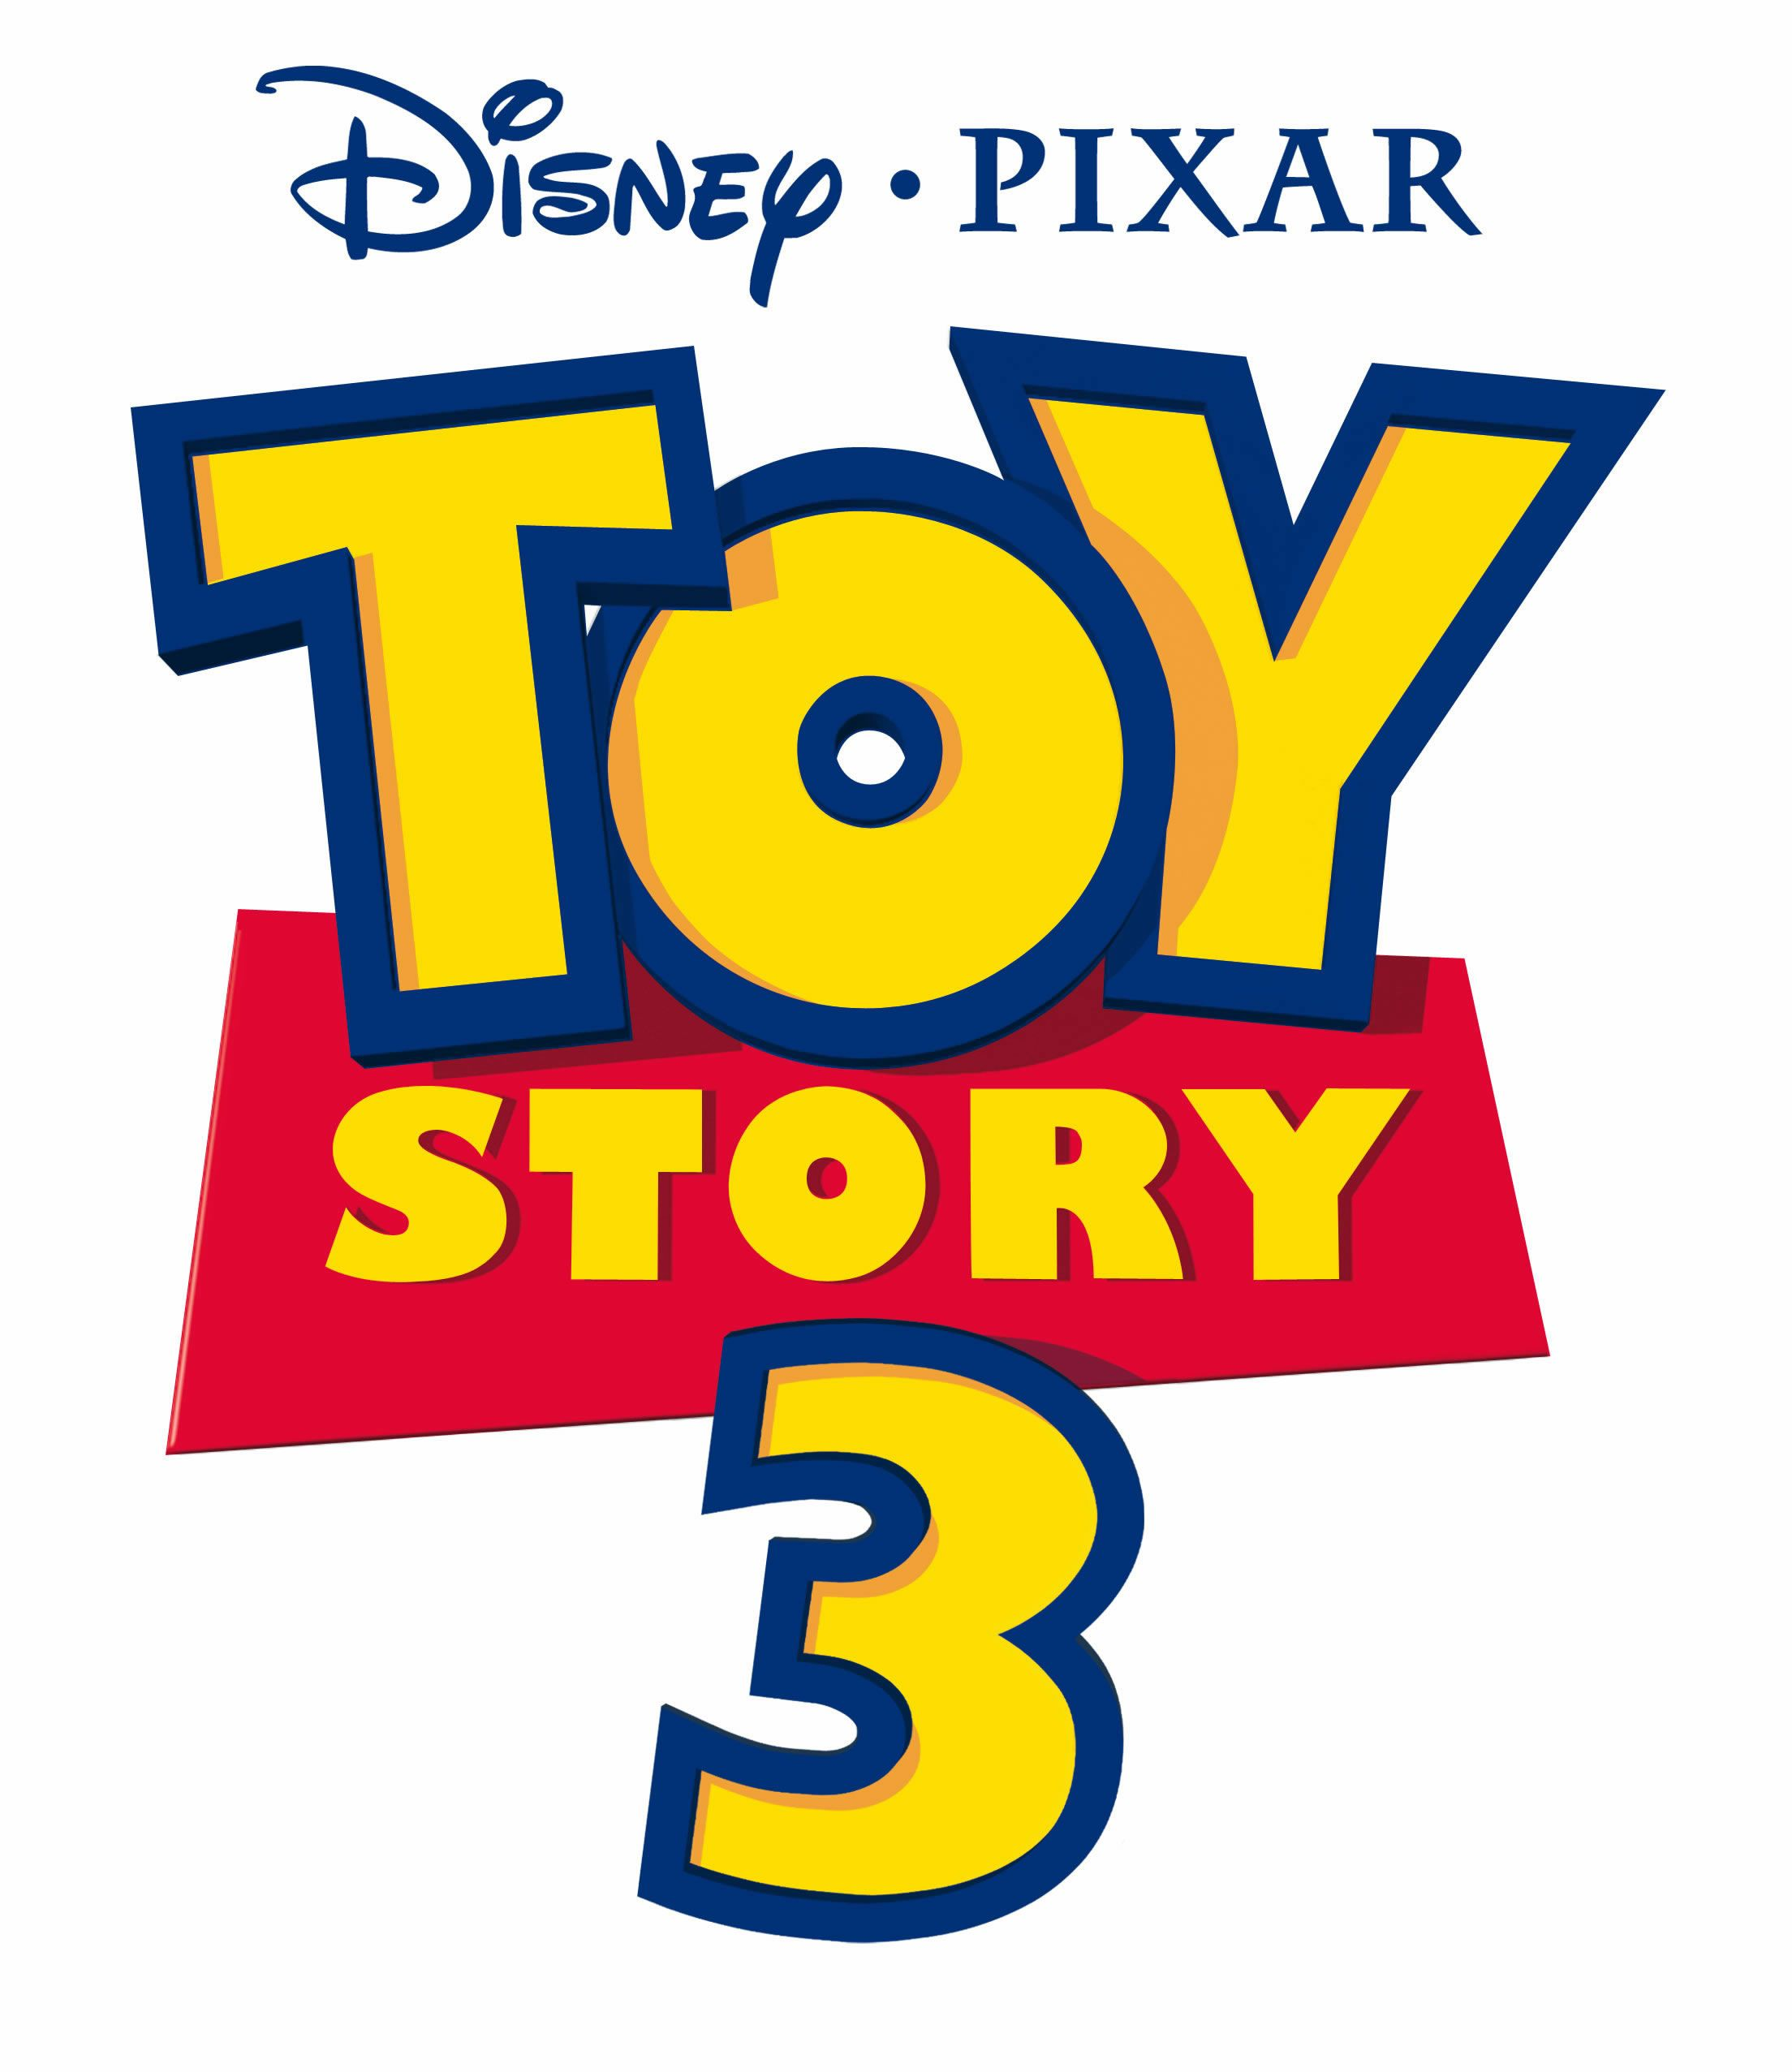 http://collider.com/wp-content/image-base/Movies/T/Toy_Story_3/toy_story_3_logo_disney_pixar_june_18__2010_l.jpg